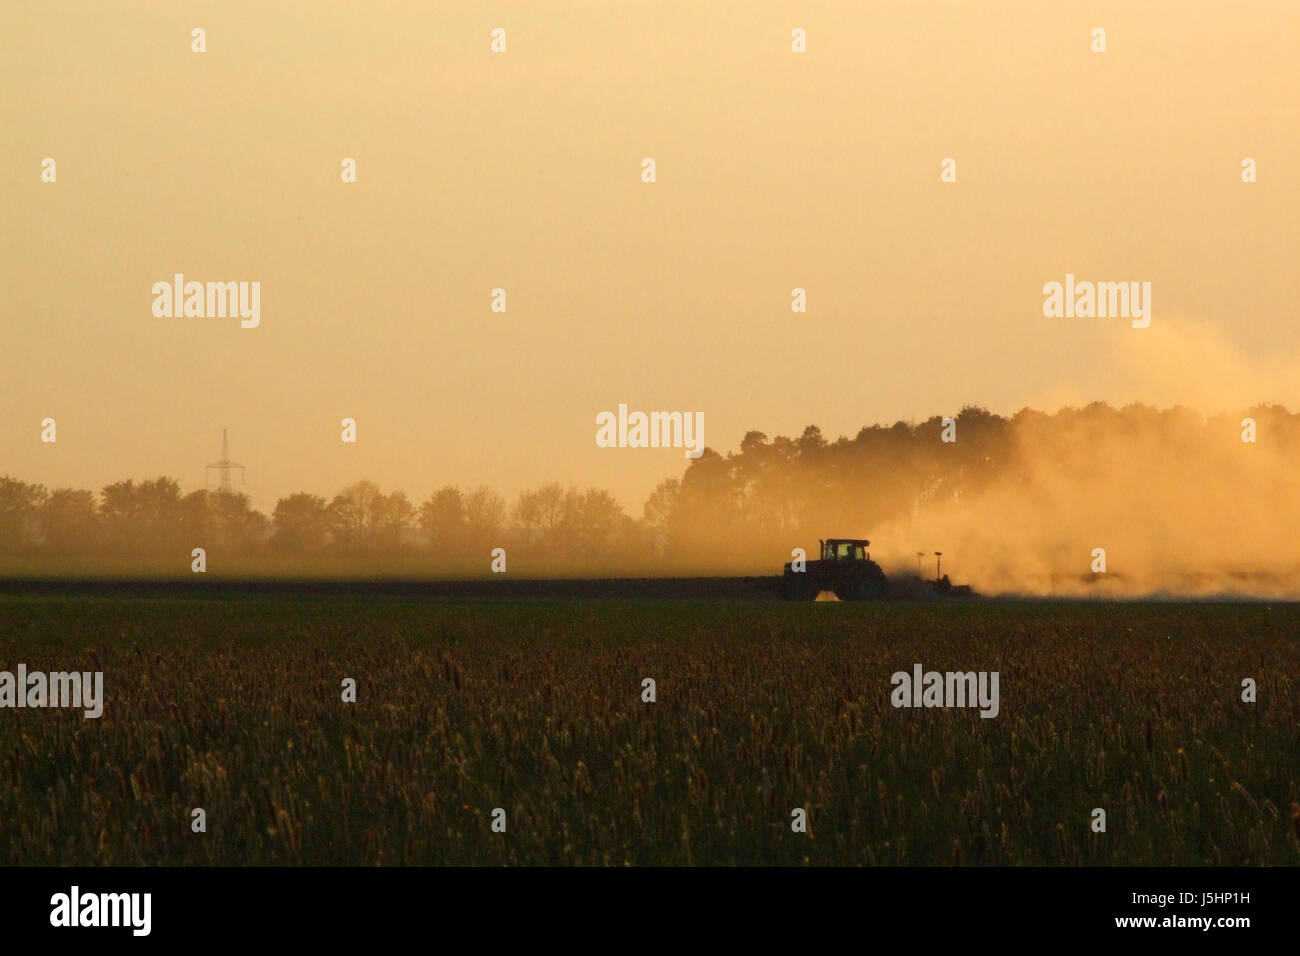 agrarian dust agriculture farming dryness drought erosion dry dried up barren Stock Photo